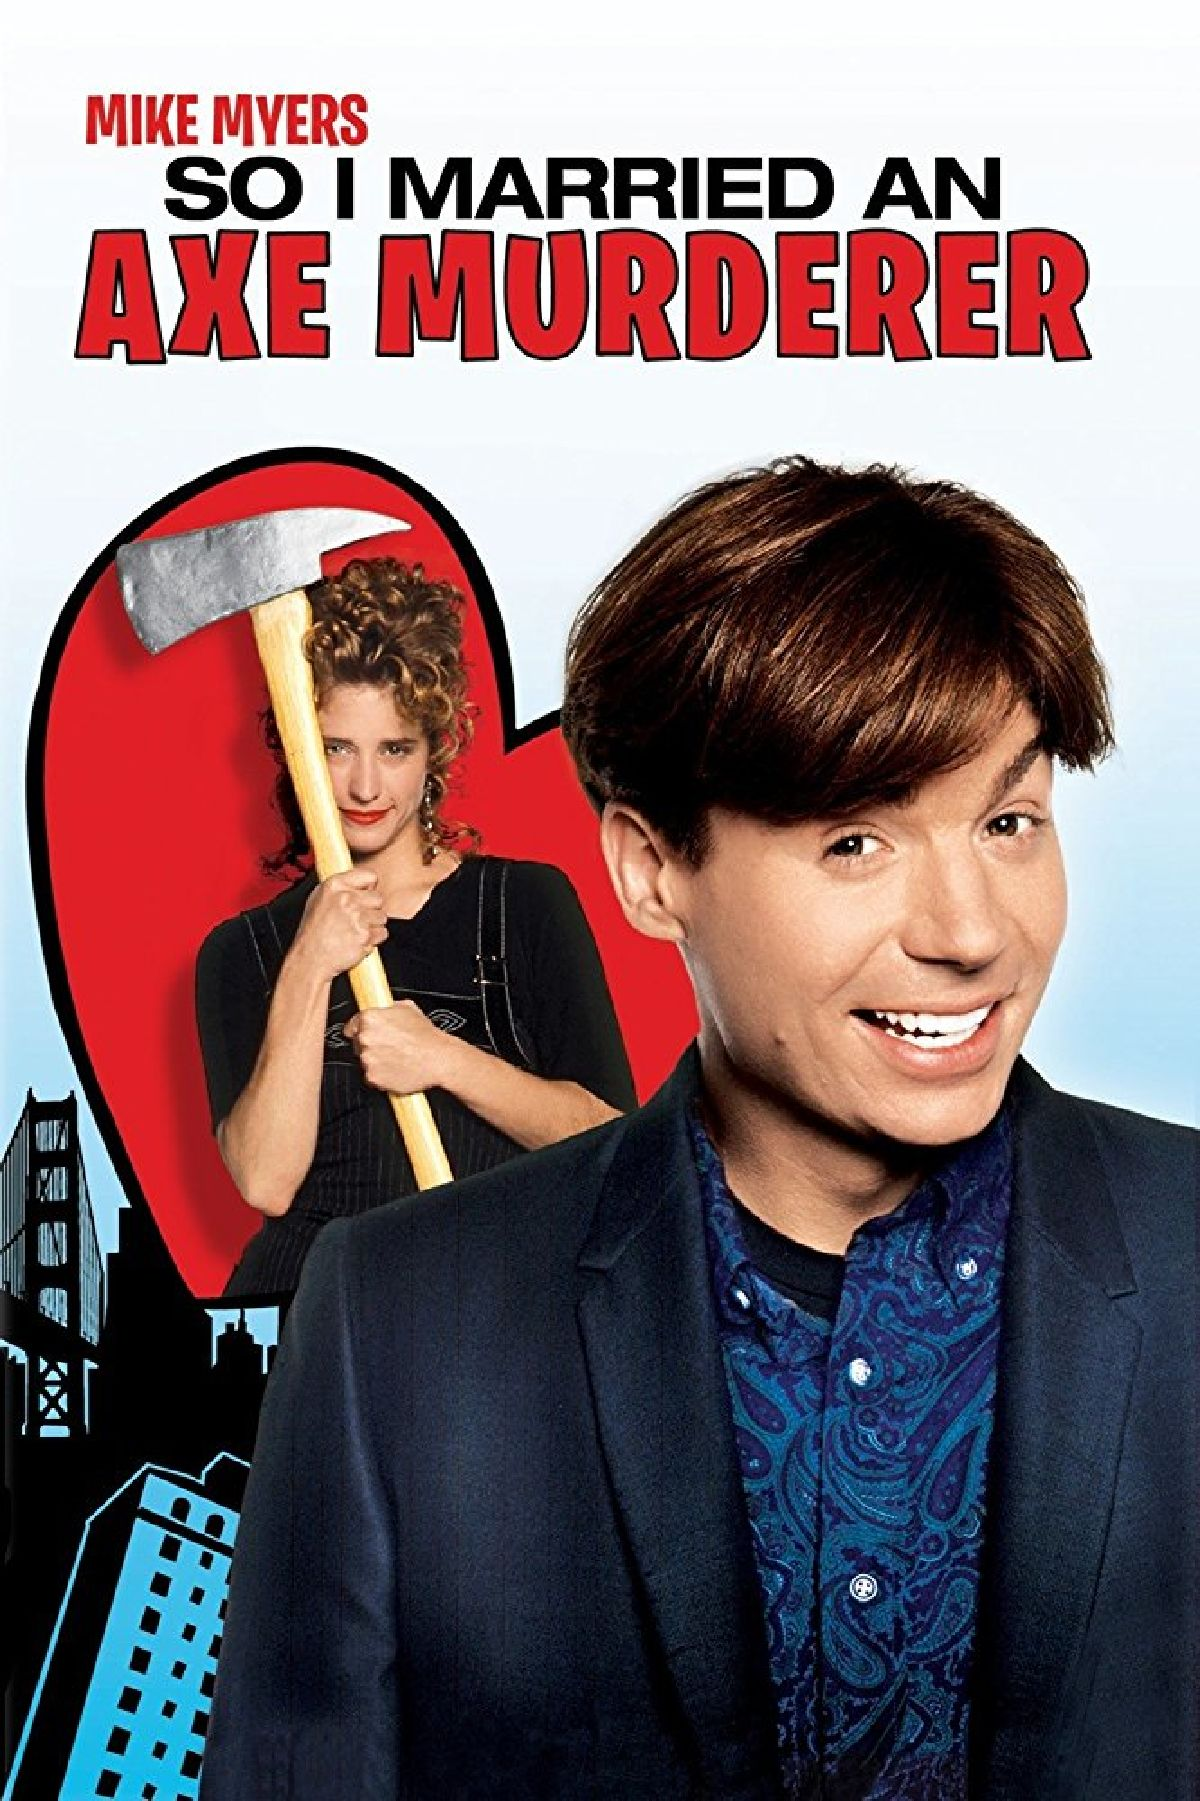 'So I Married An Axe Murderer' movie poster